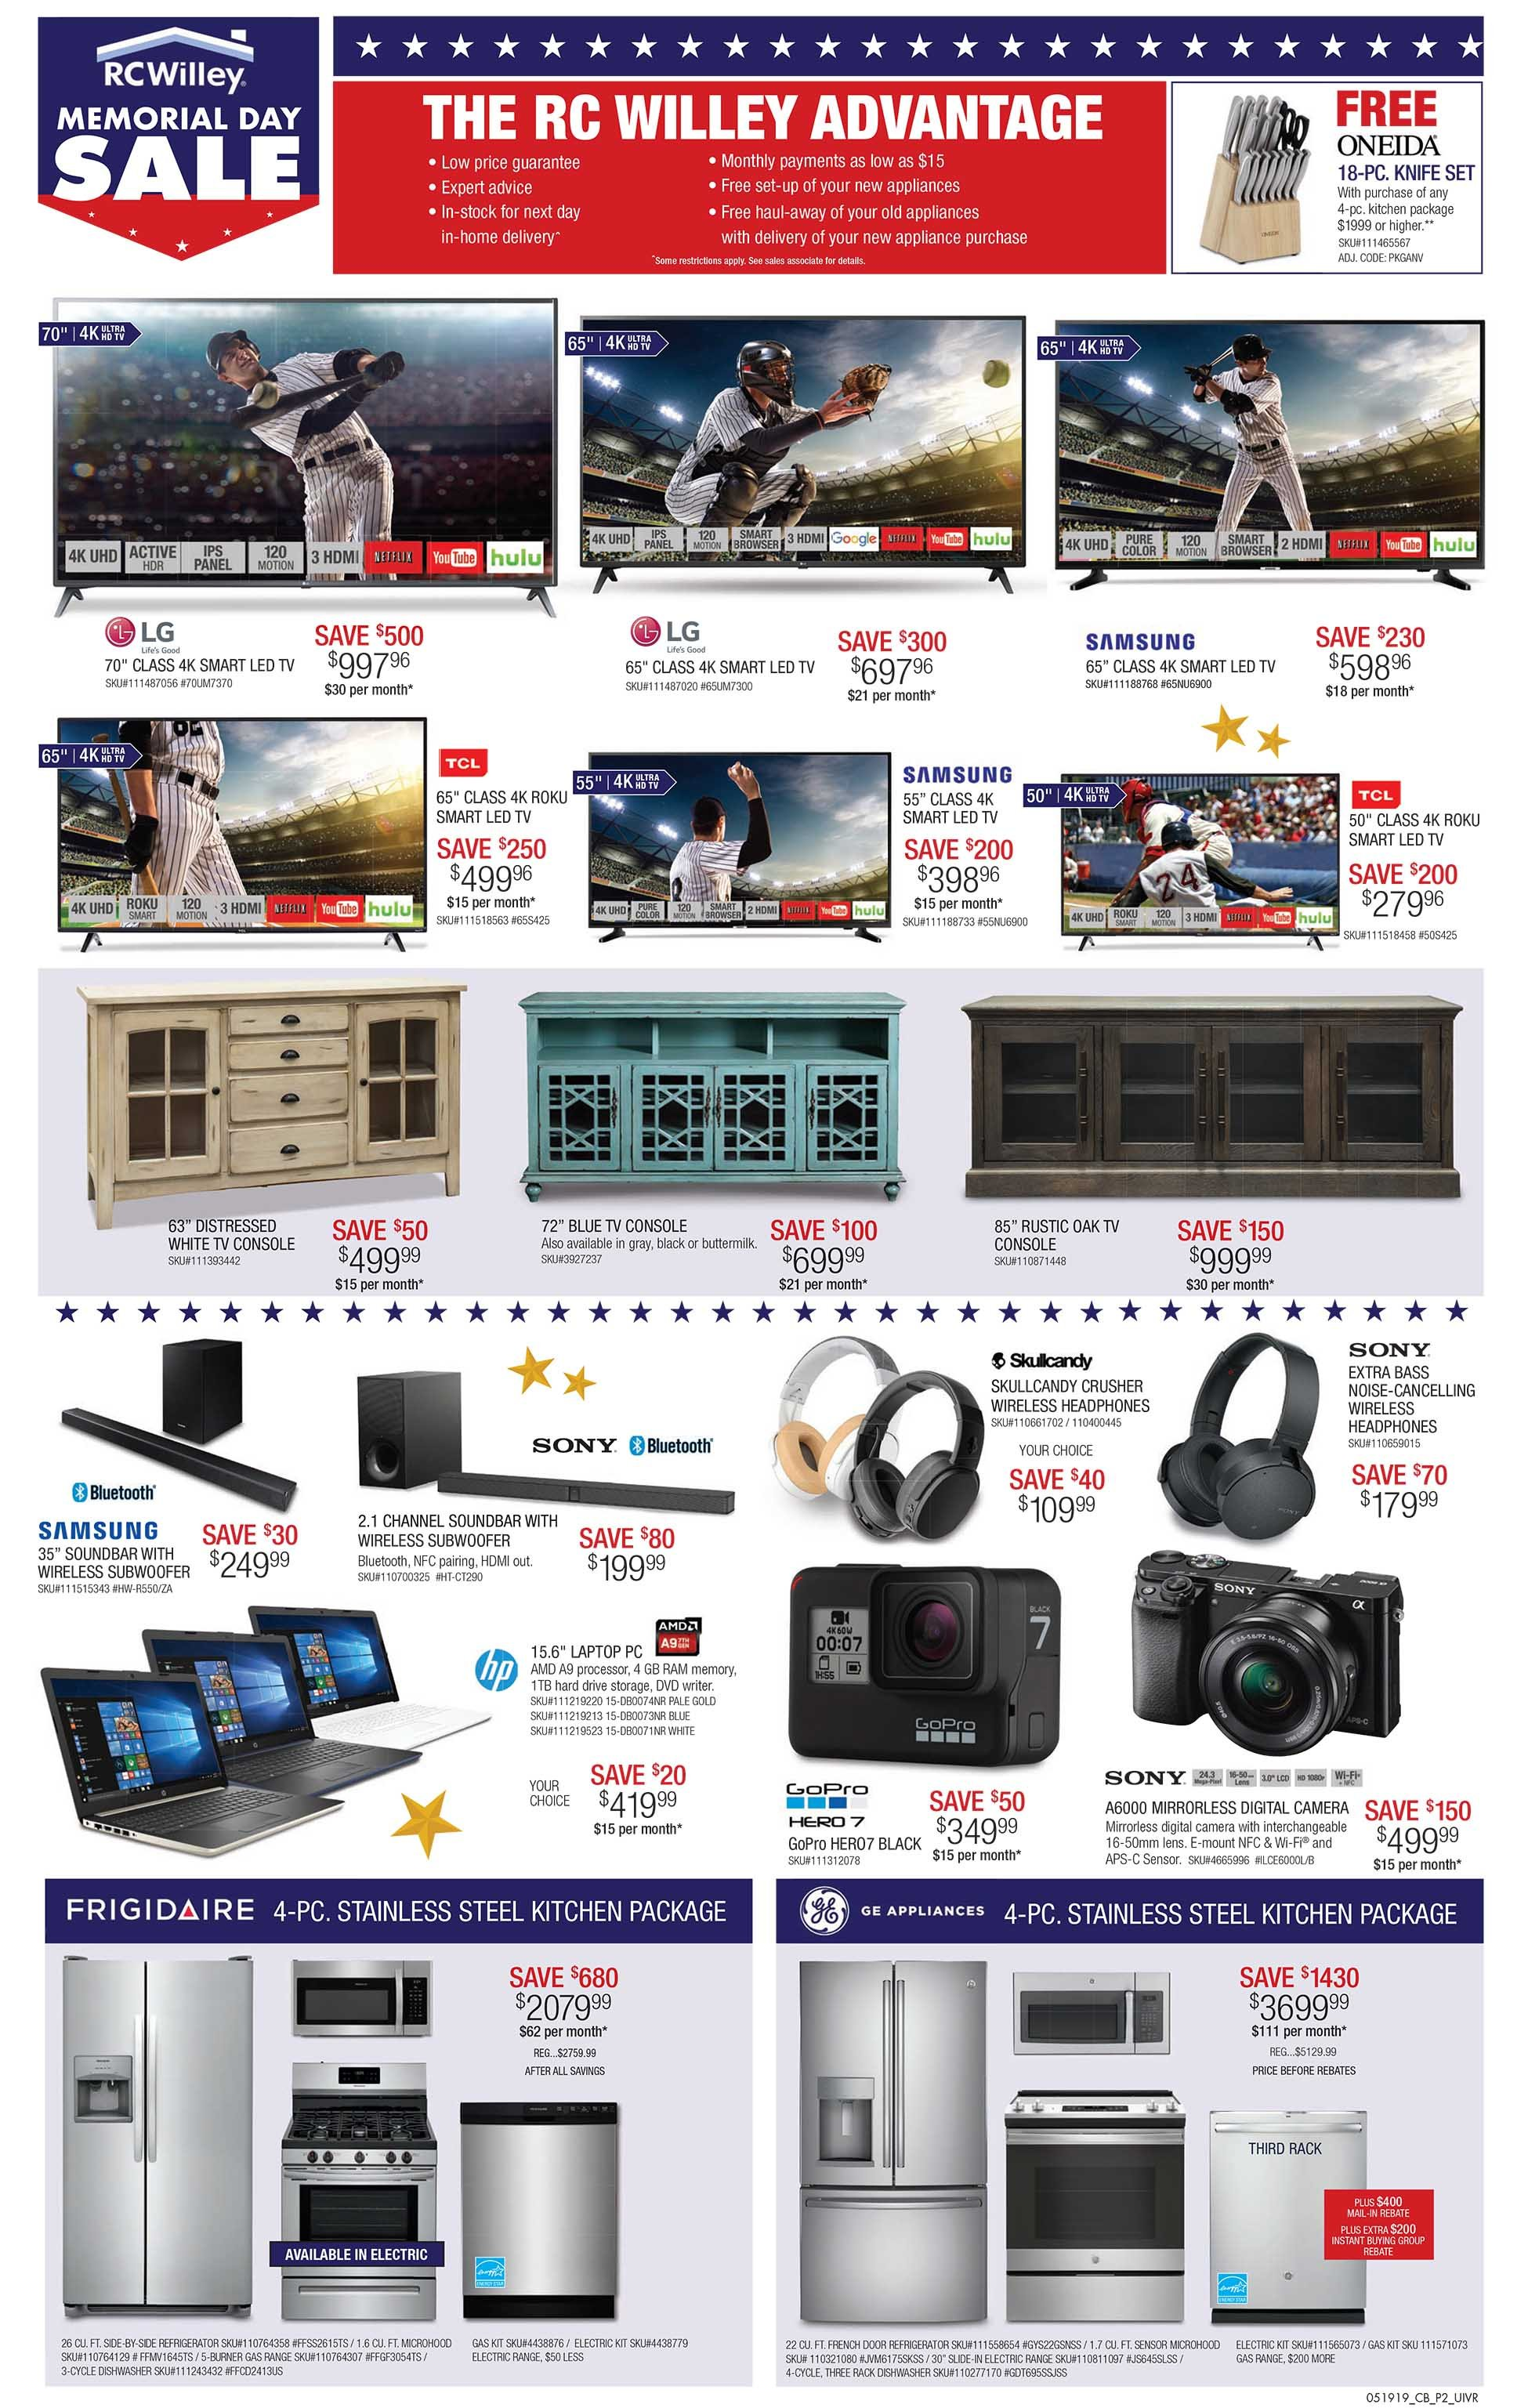 Rc Willey S Memorial Day Sale